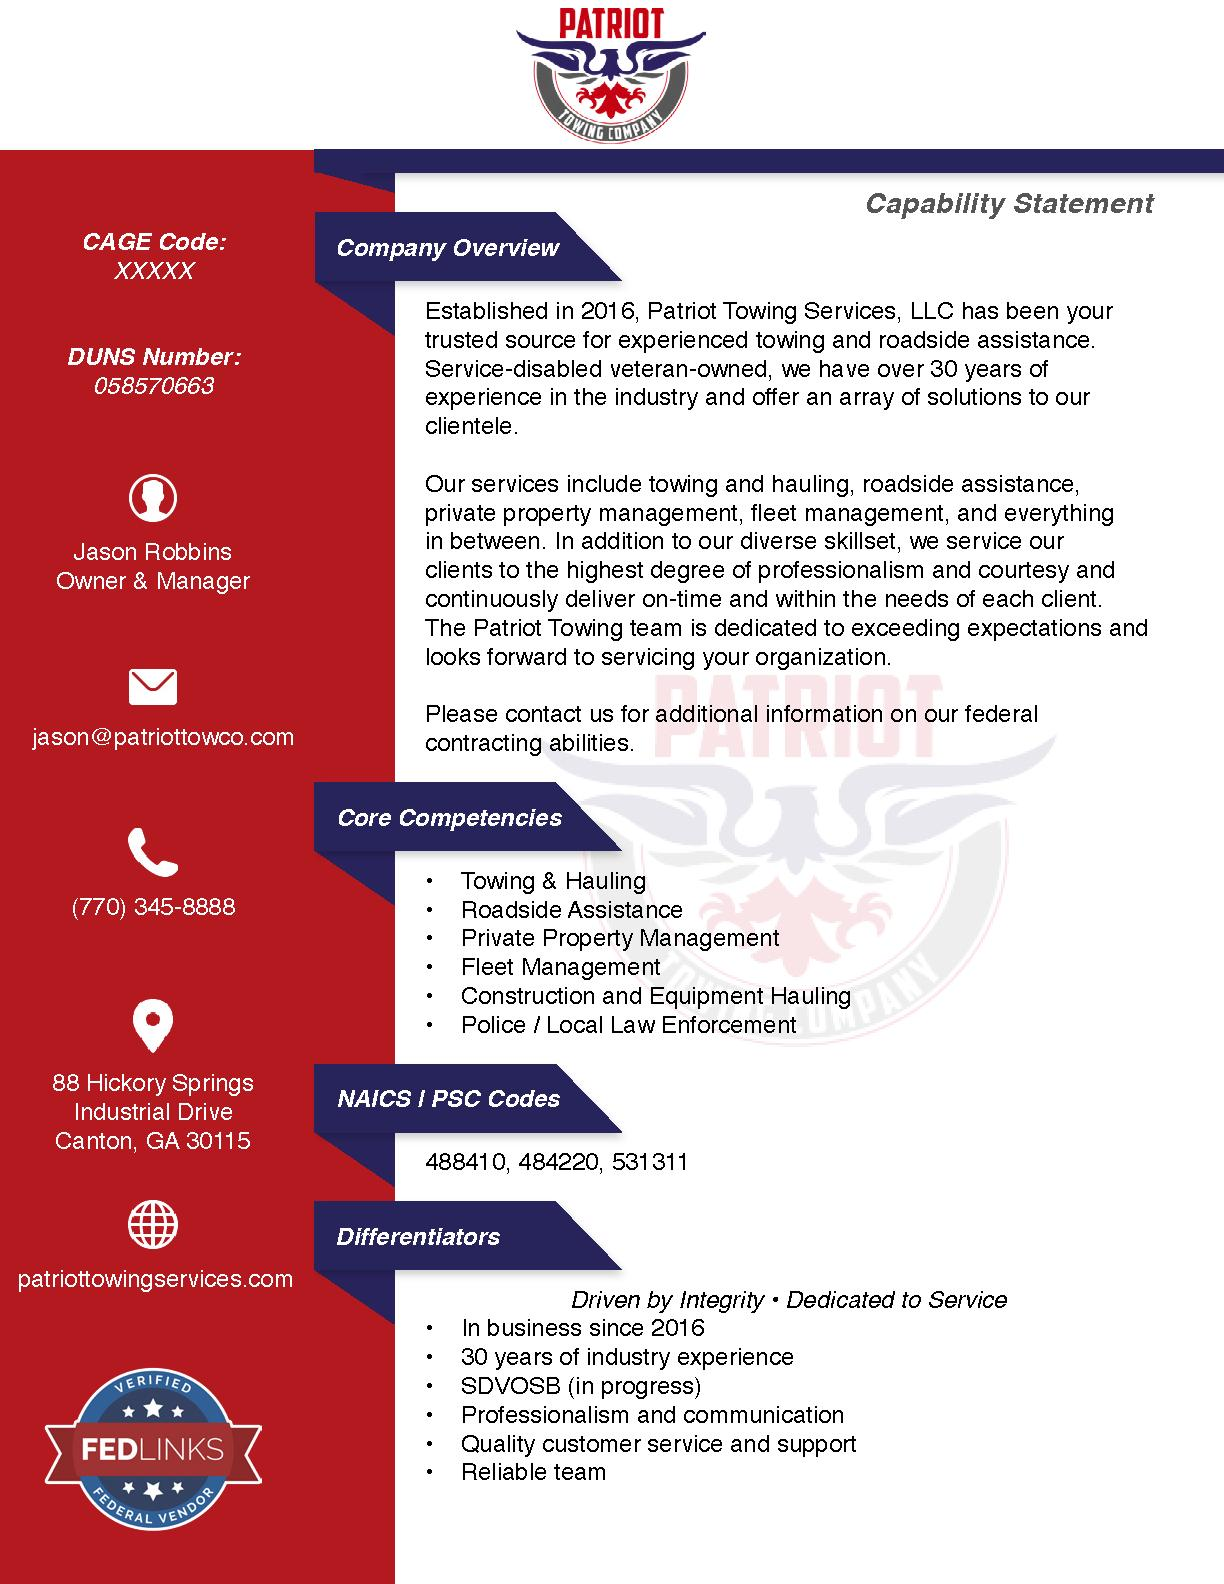 Patriot towing services llc capability statement